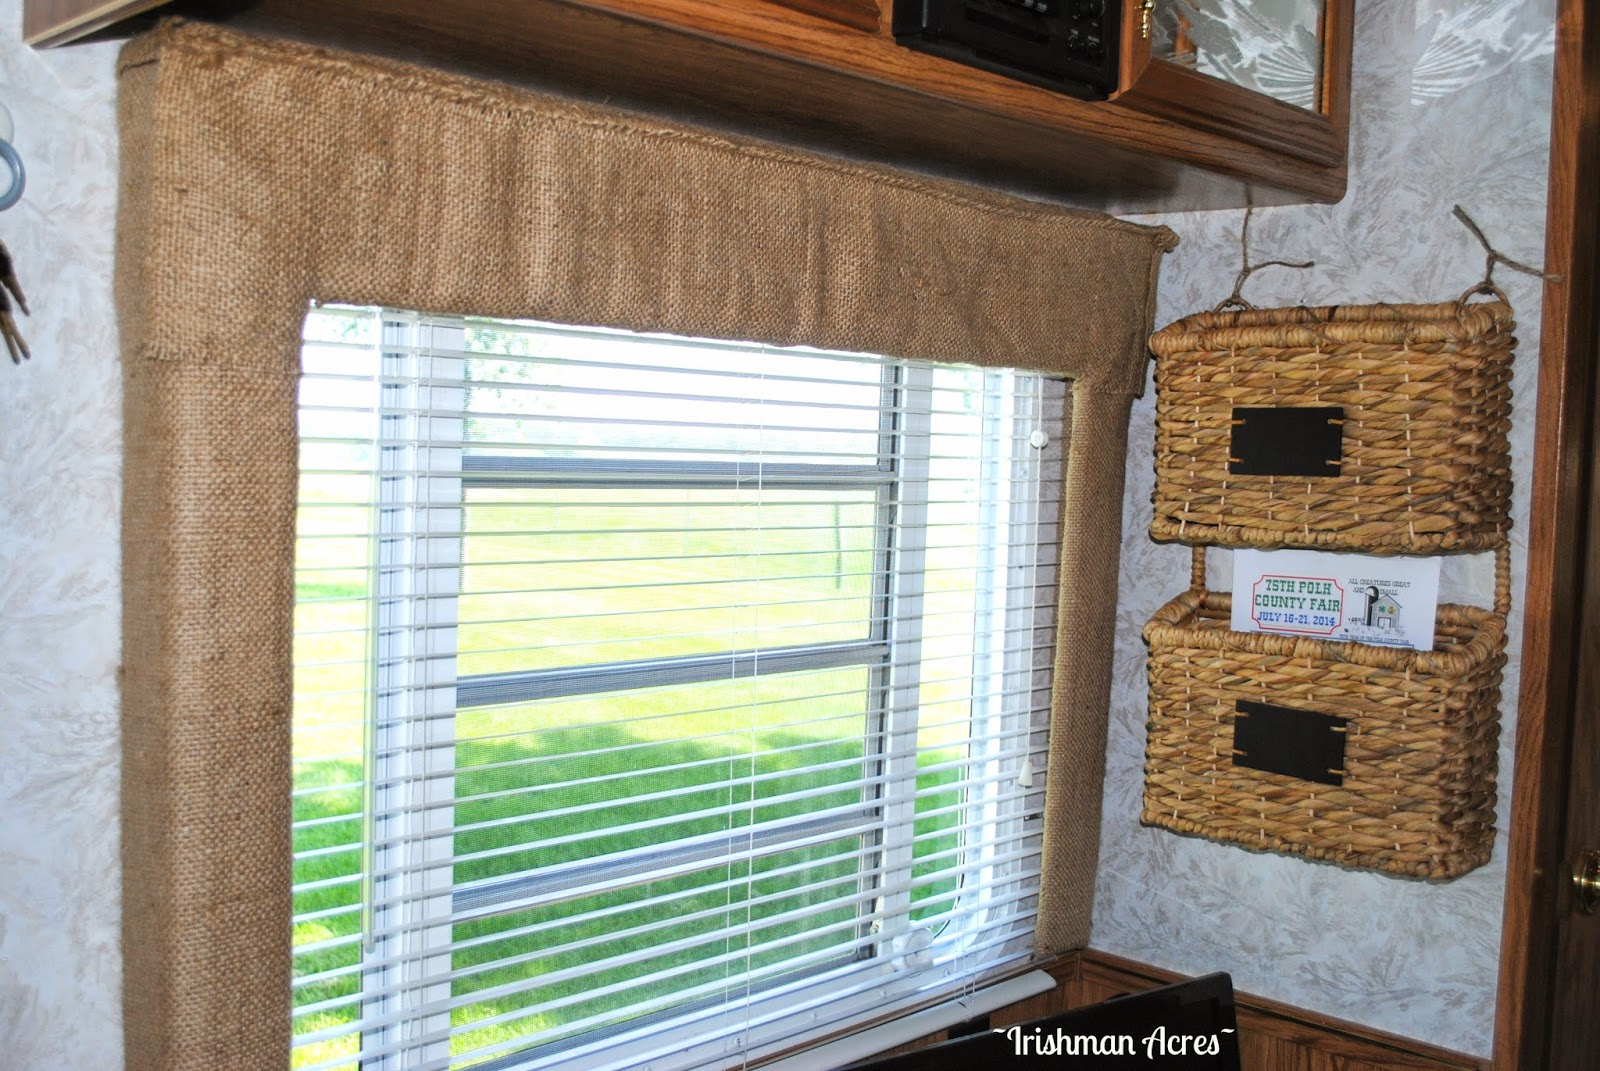 Camper window treatments - Now The Window Above The Dining Table Was The Biggest Challenge I Know I Know Not A Big Deal In Hind Site But I Had This Vision Of A Deer Rack